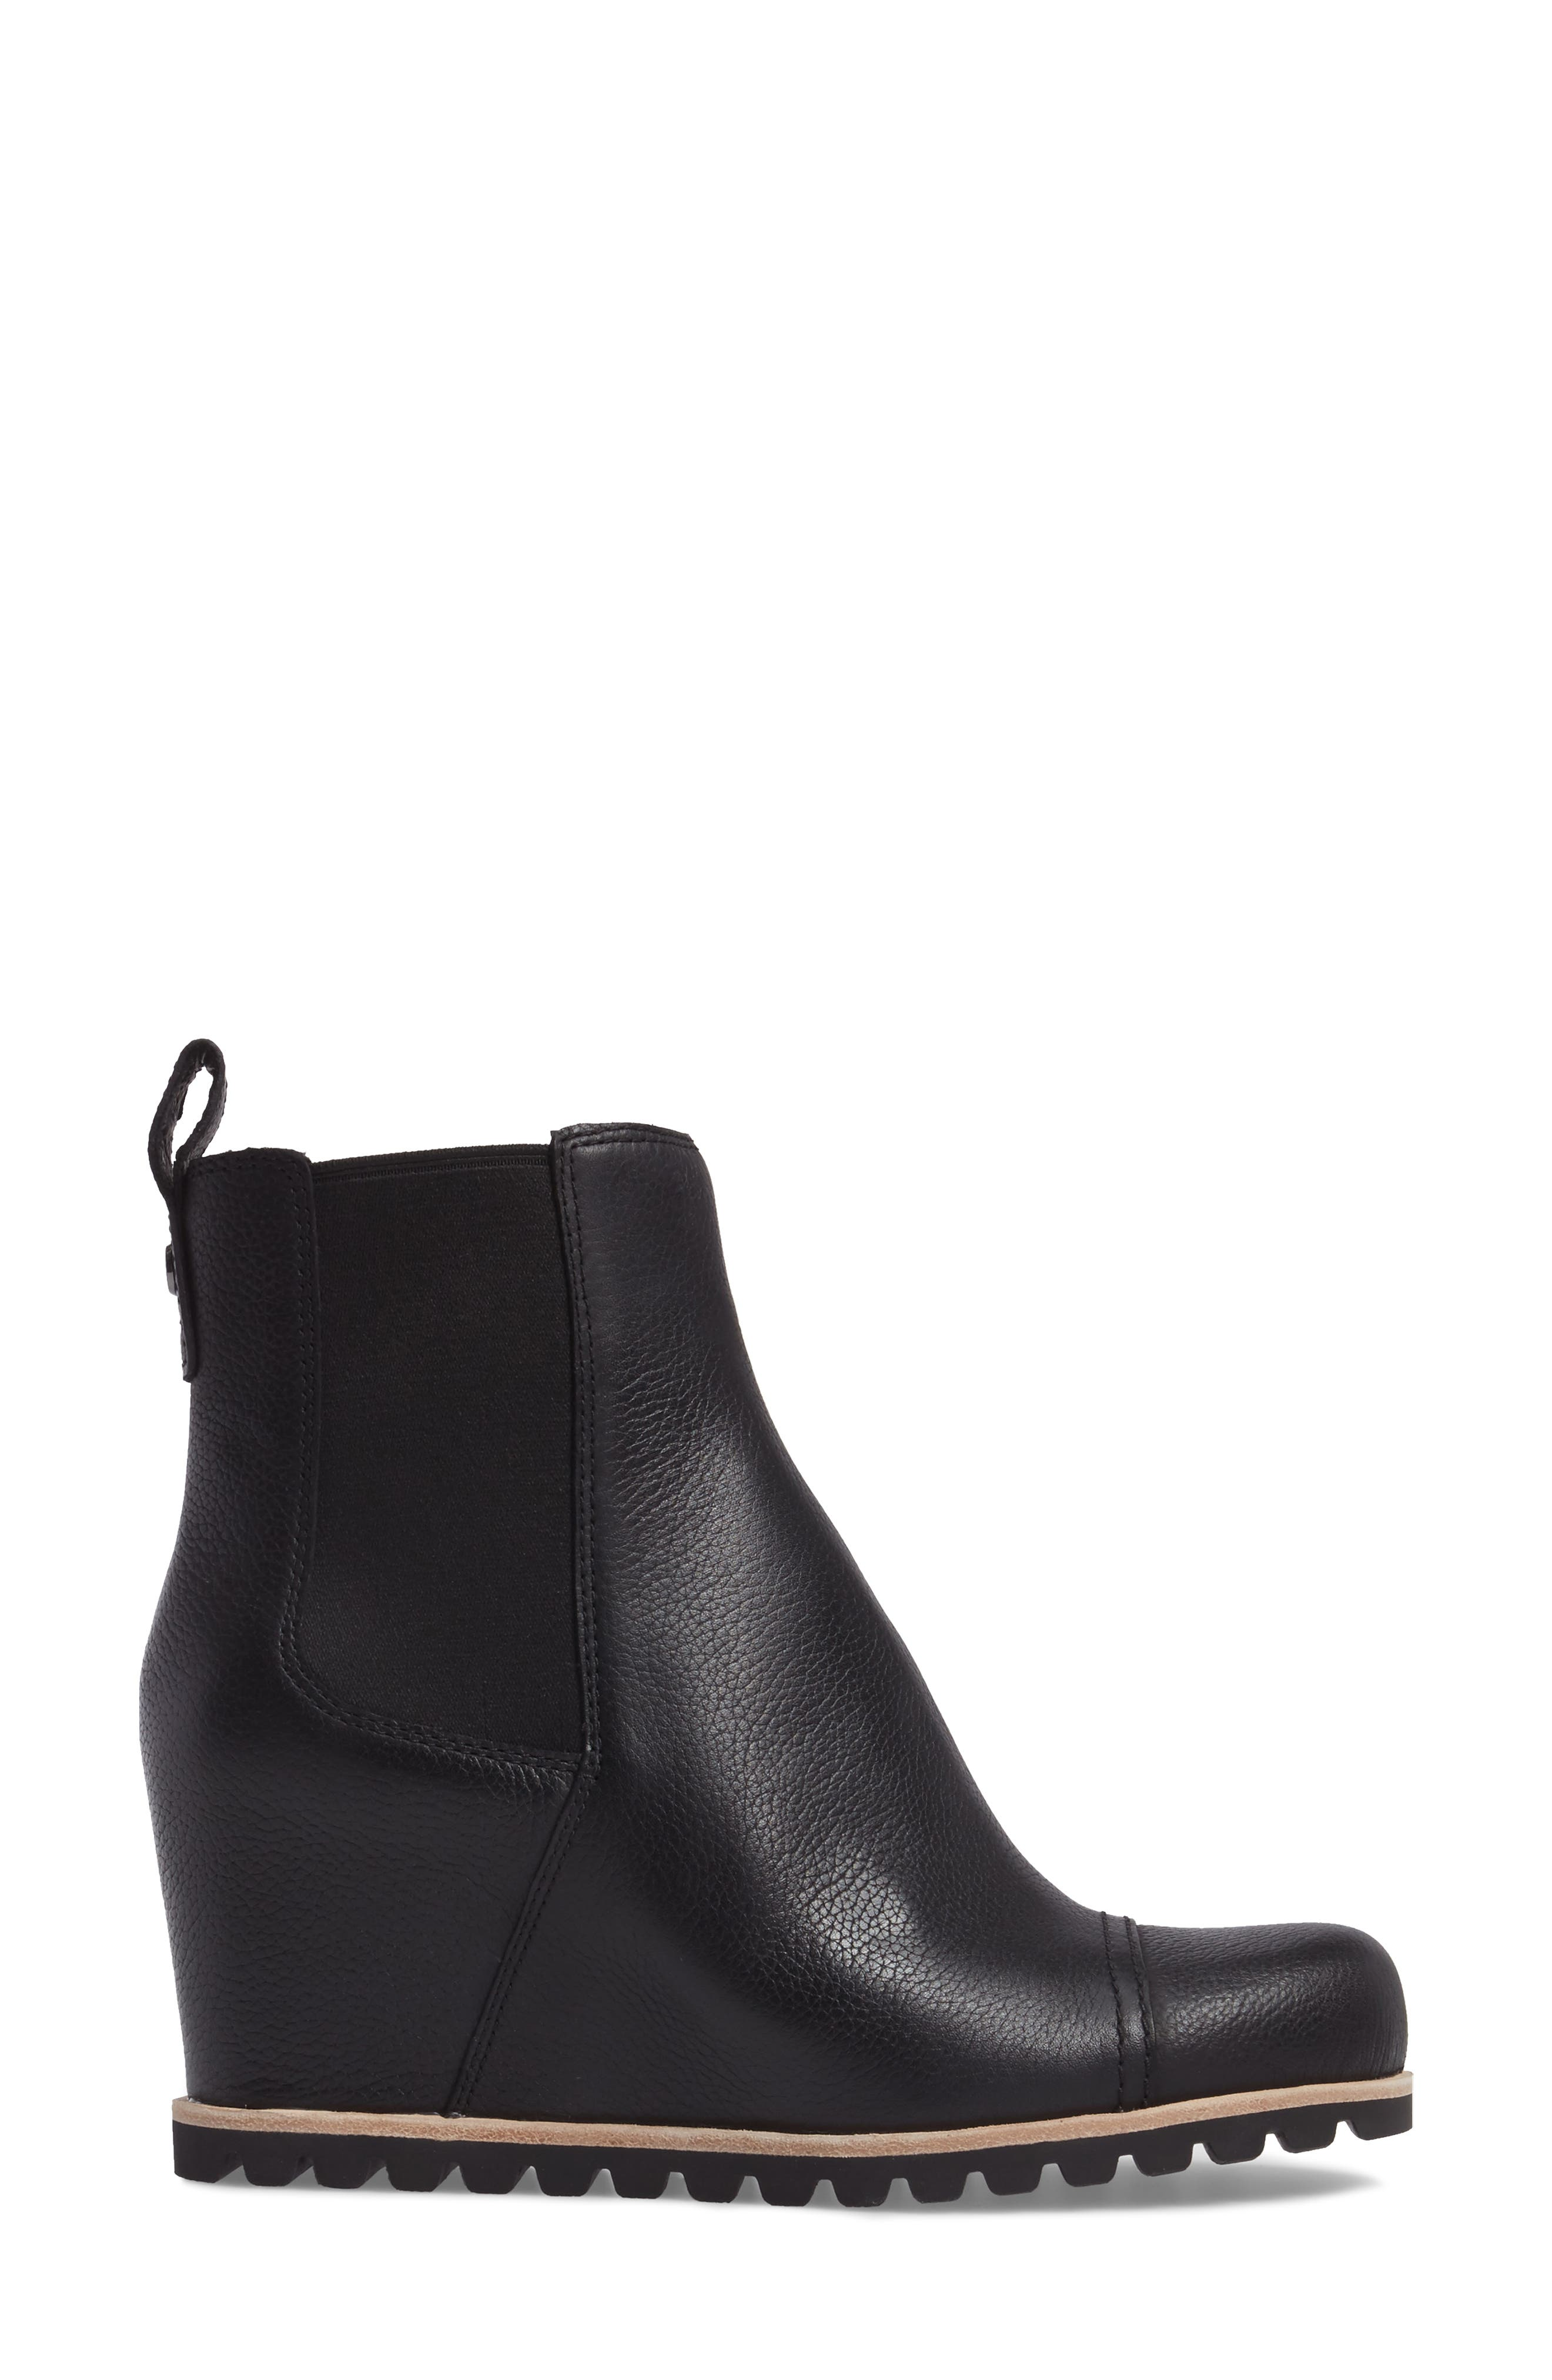 Pax Waterproof Wedge Boot,                             Alternate thumbnail 3, color,                             Black Leather